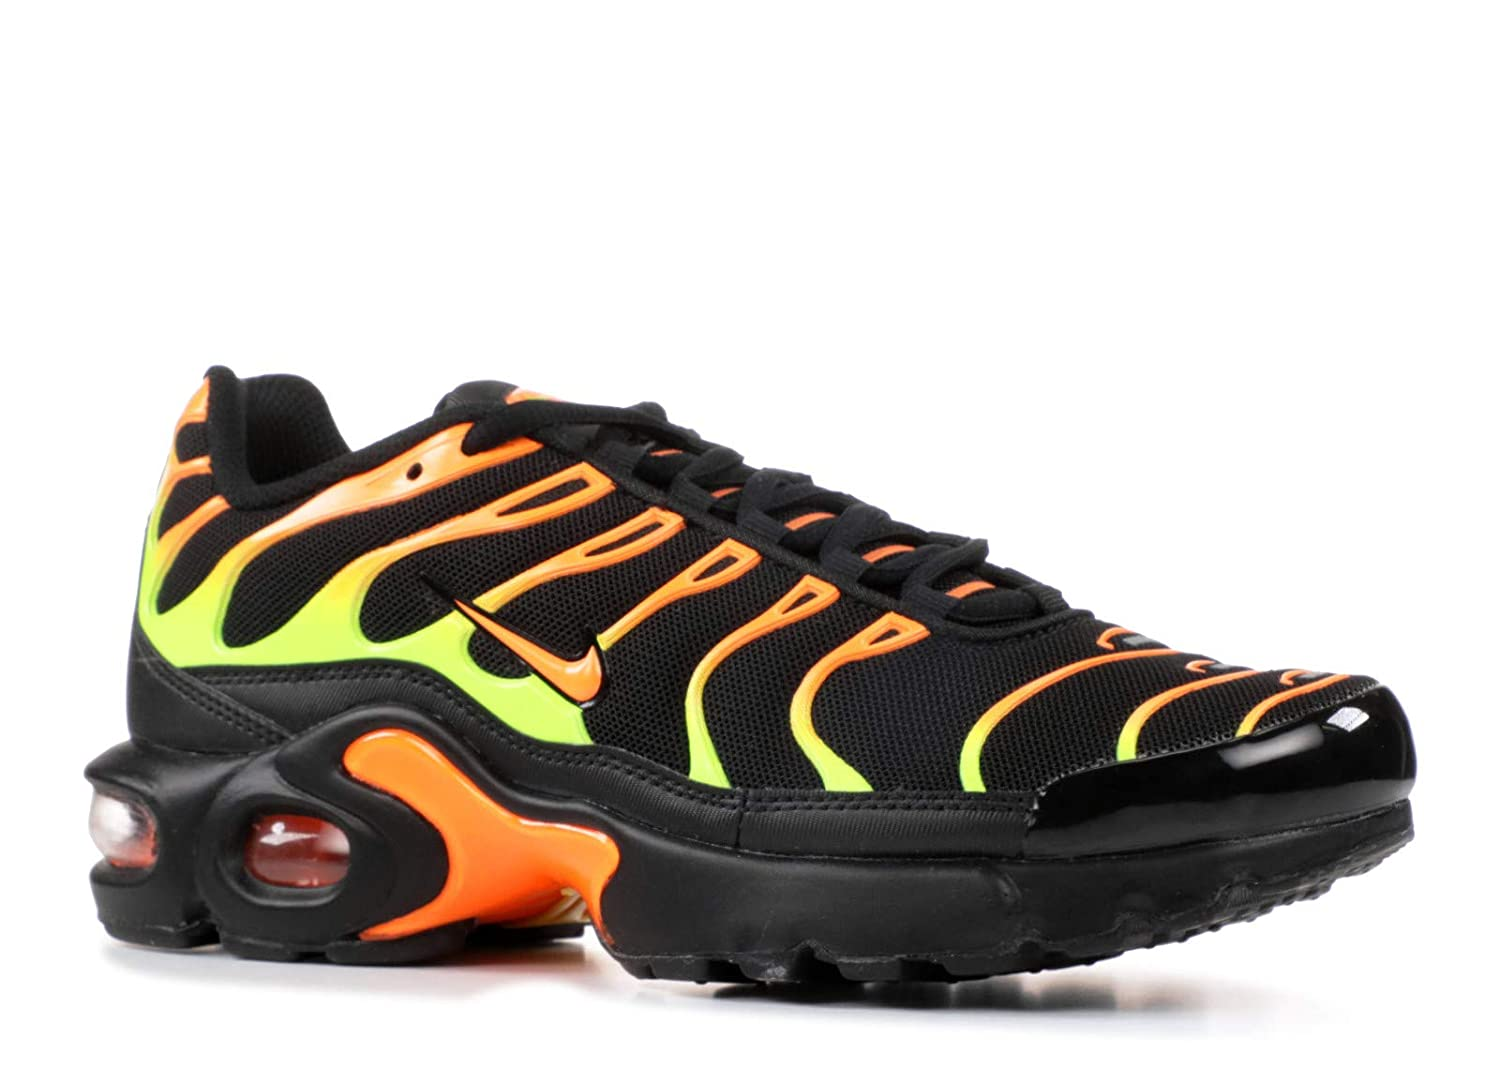 302dea99 Amazon.com | Nike Air Max Plus Black/Volt-Total Orange (GS) (3.5 M ...